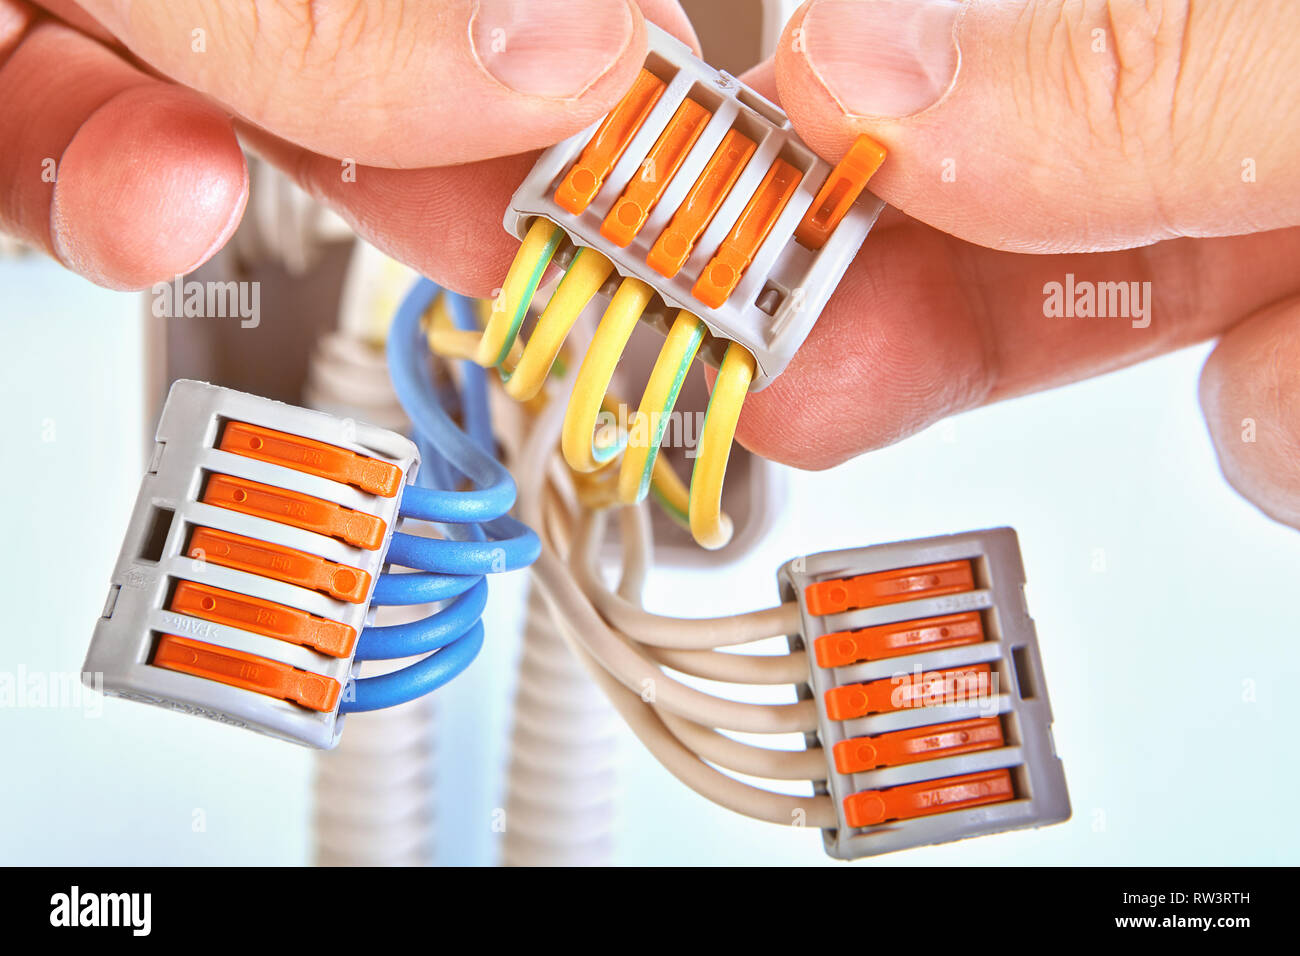 Stupendous Electrical Wires Of Plastic Junction Box Are Connected Together With Wiring 101 Archstreekradiomeanderfmnl